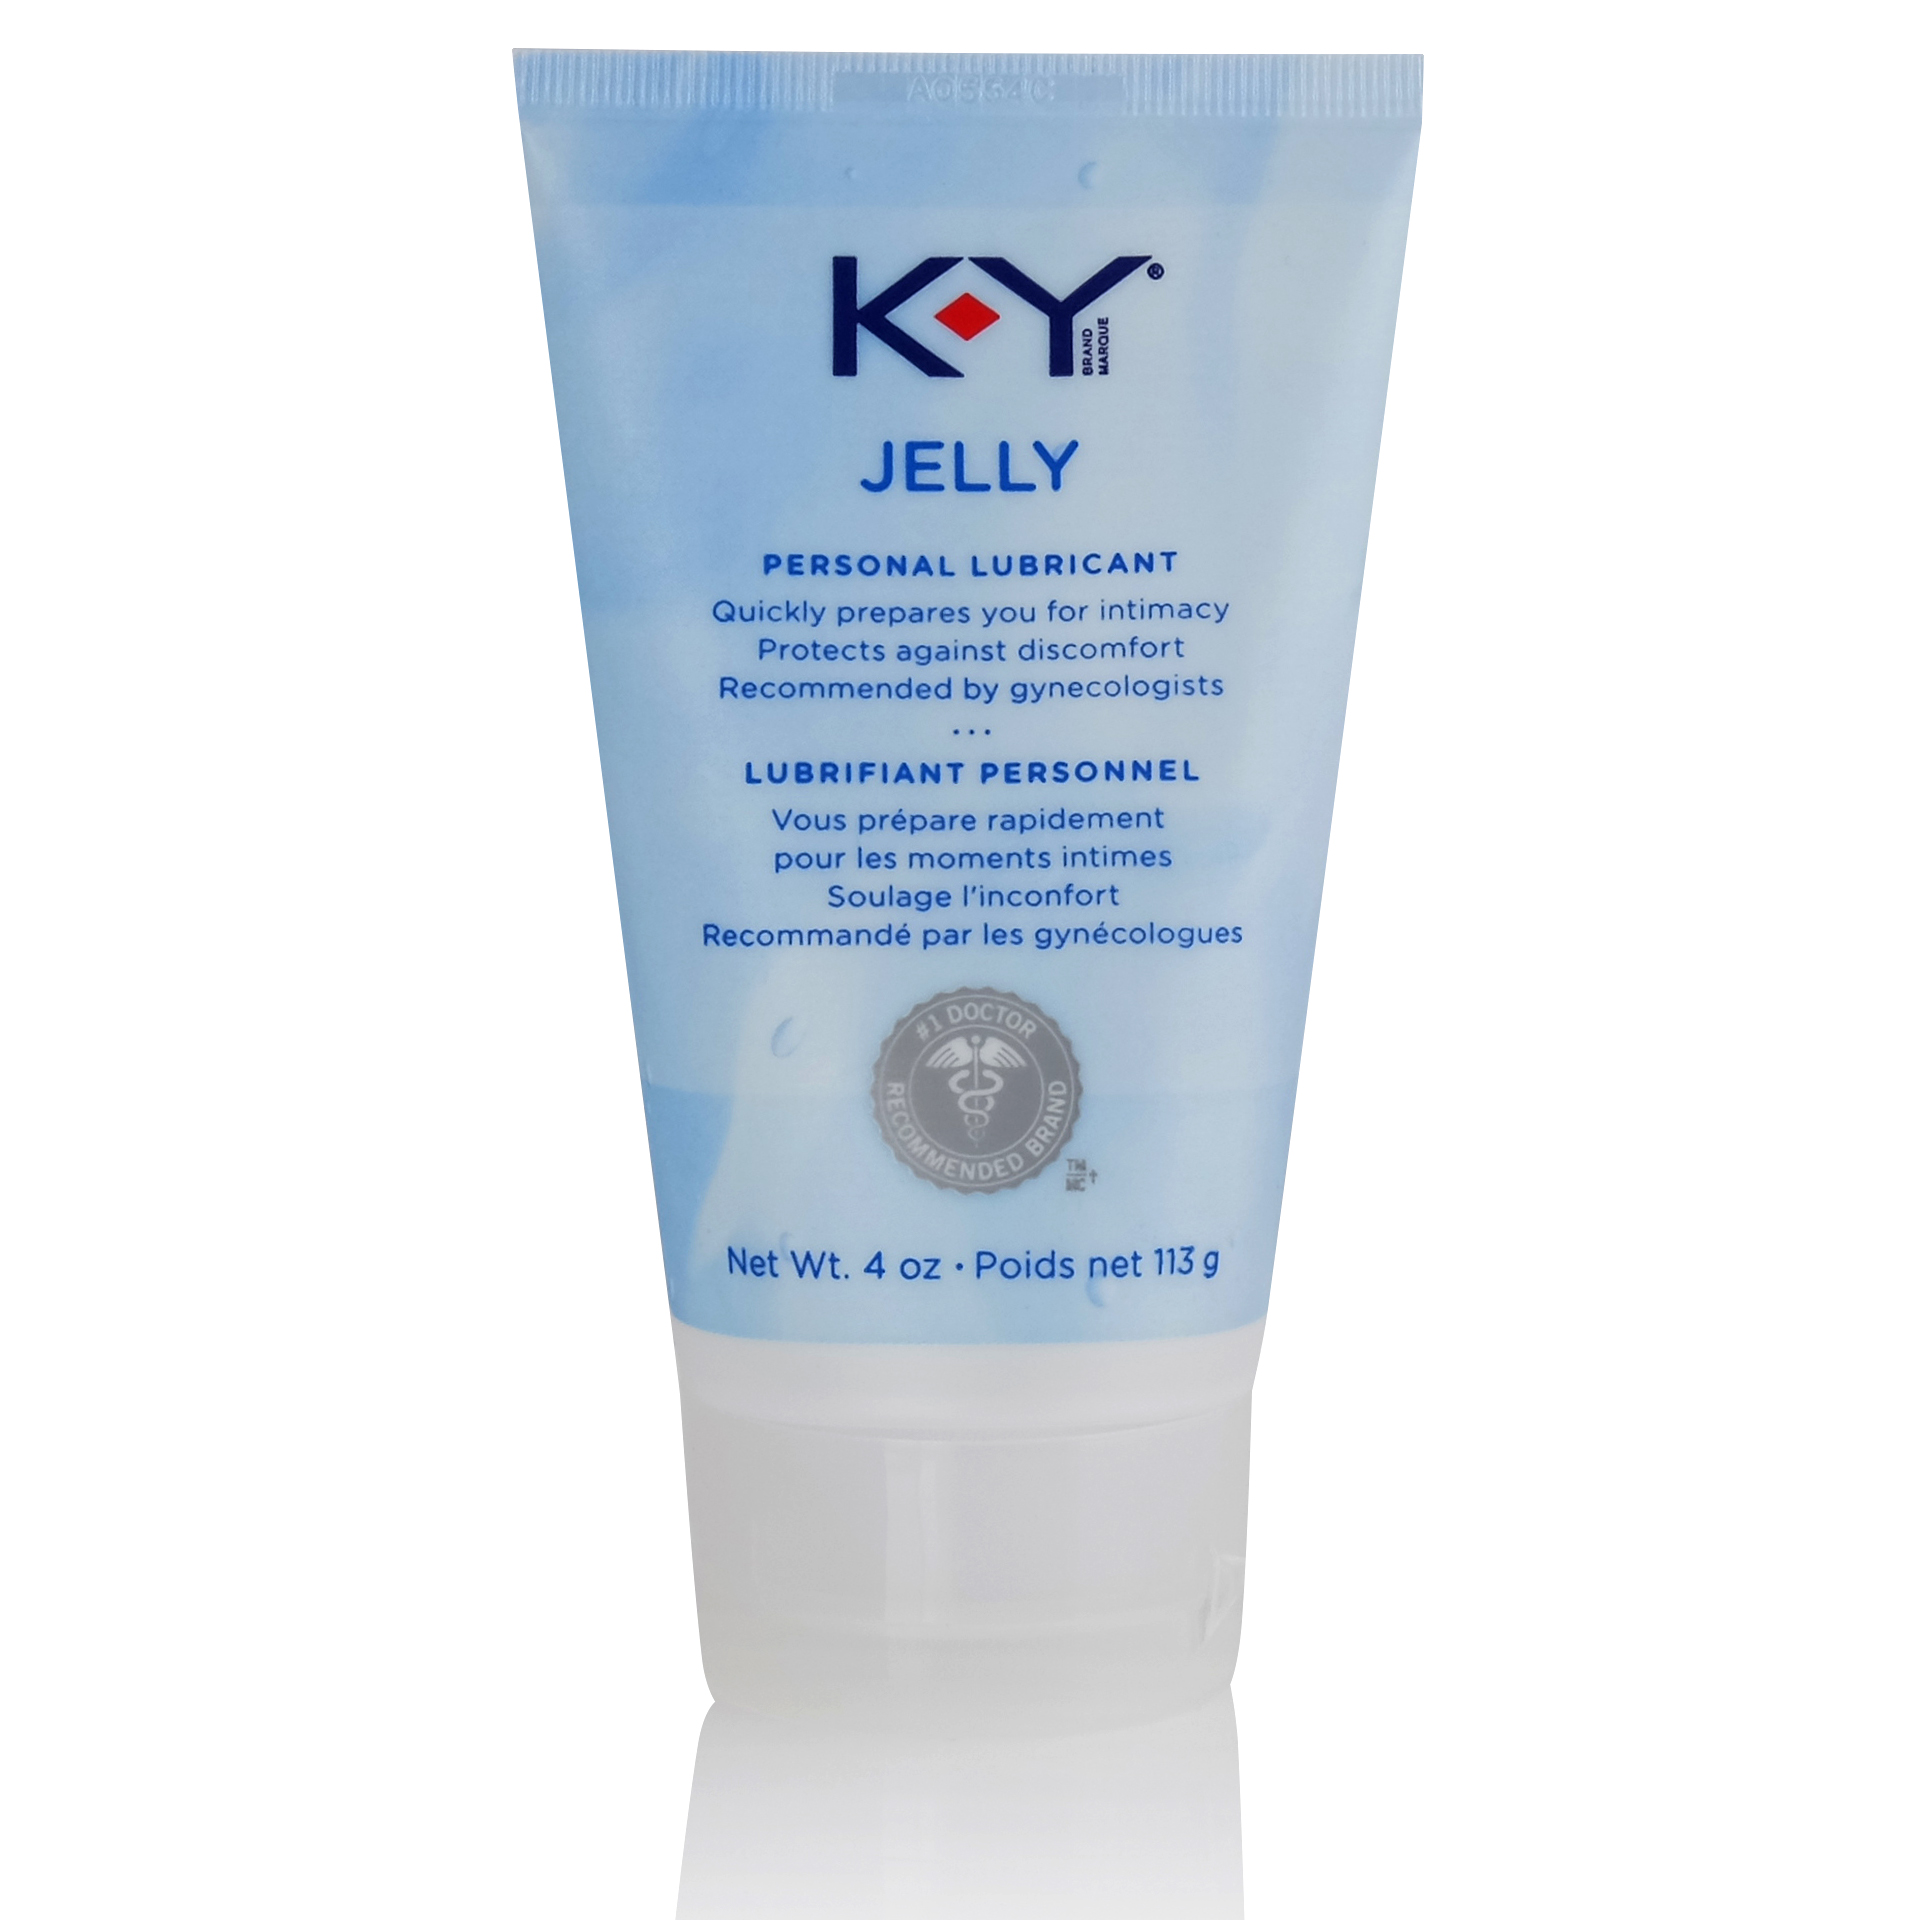 What Does Ky Jelly Stand For